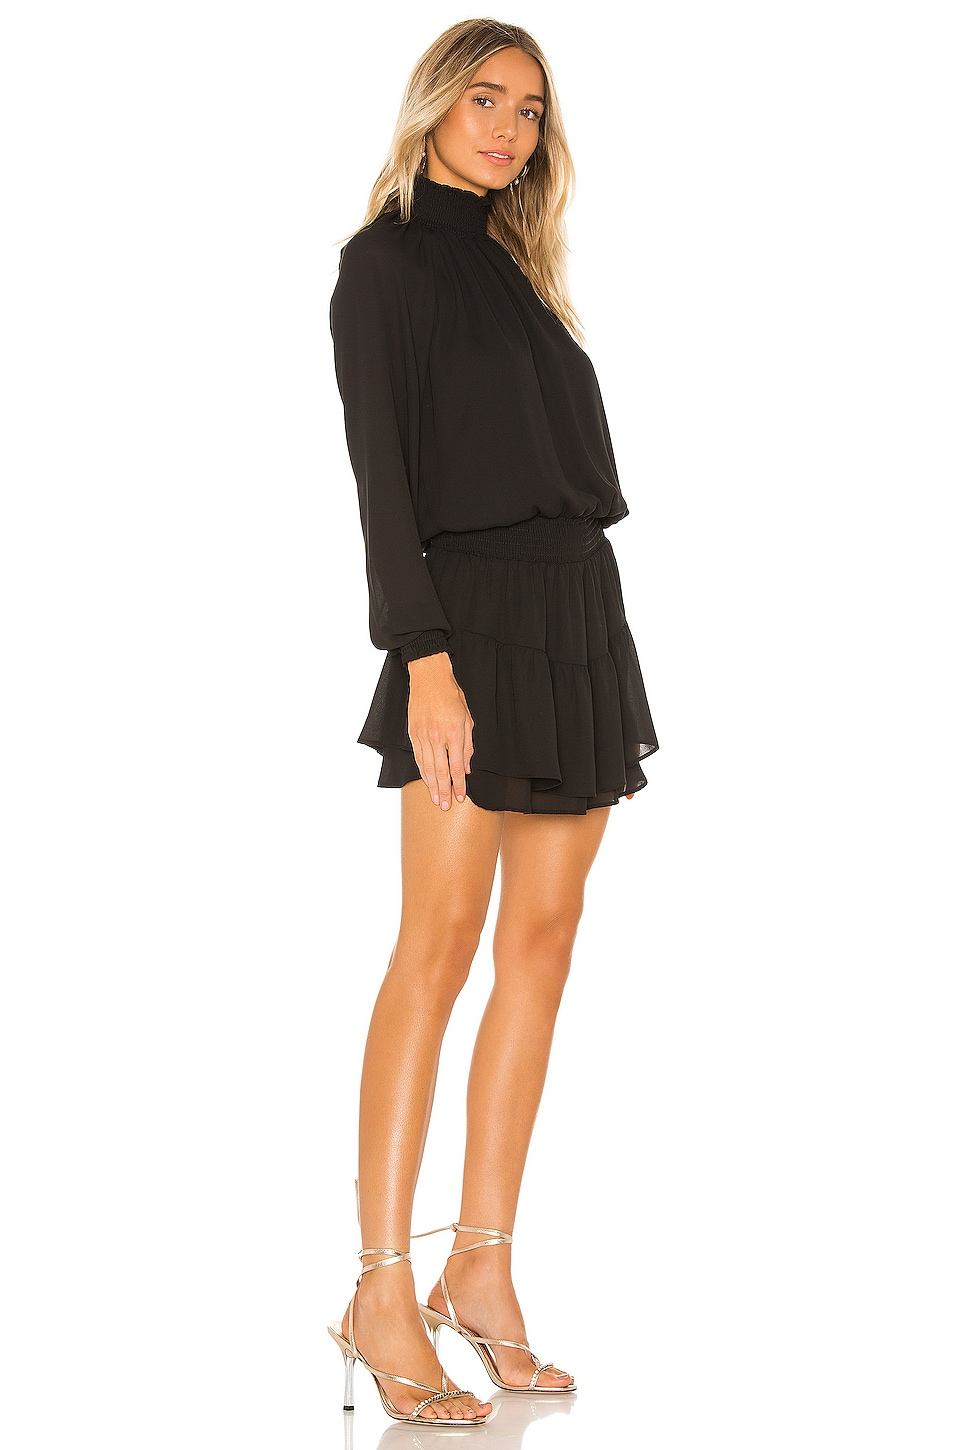 X REVOLVE Smocked Turtleneck Dress, view 2, click to view large image.